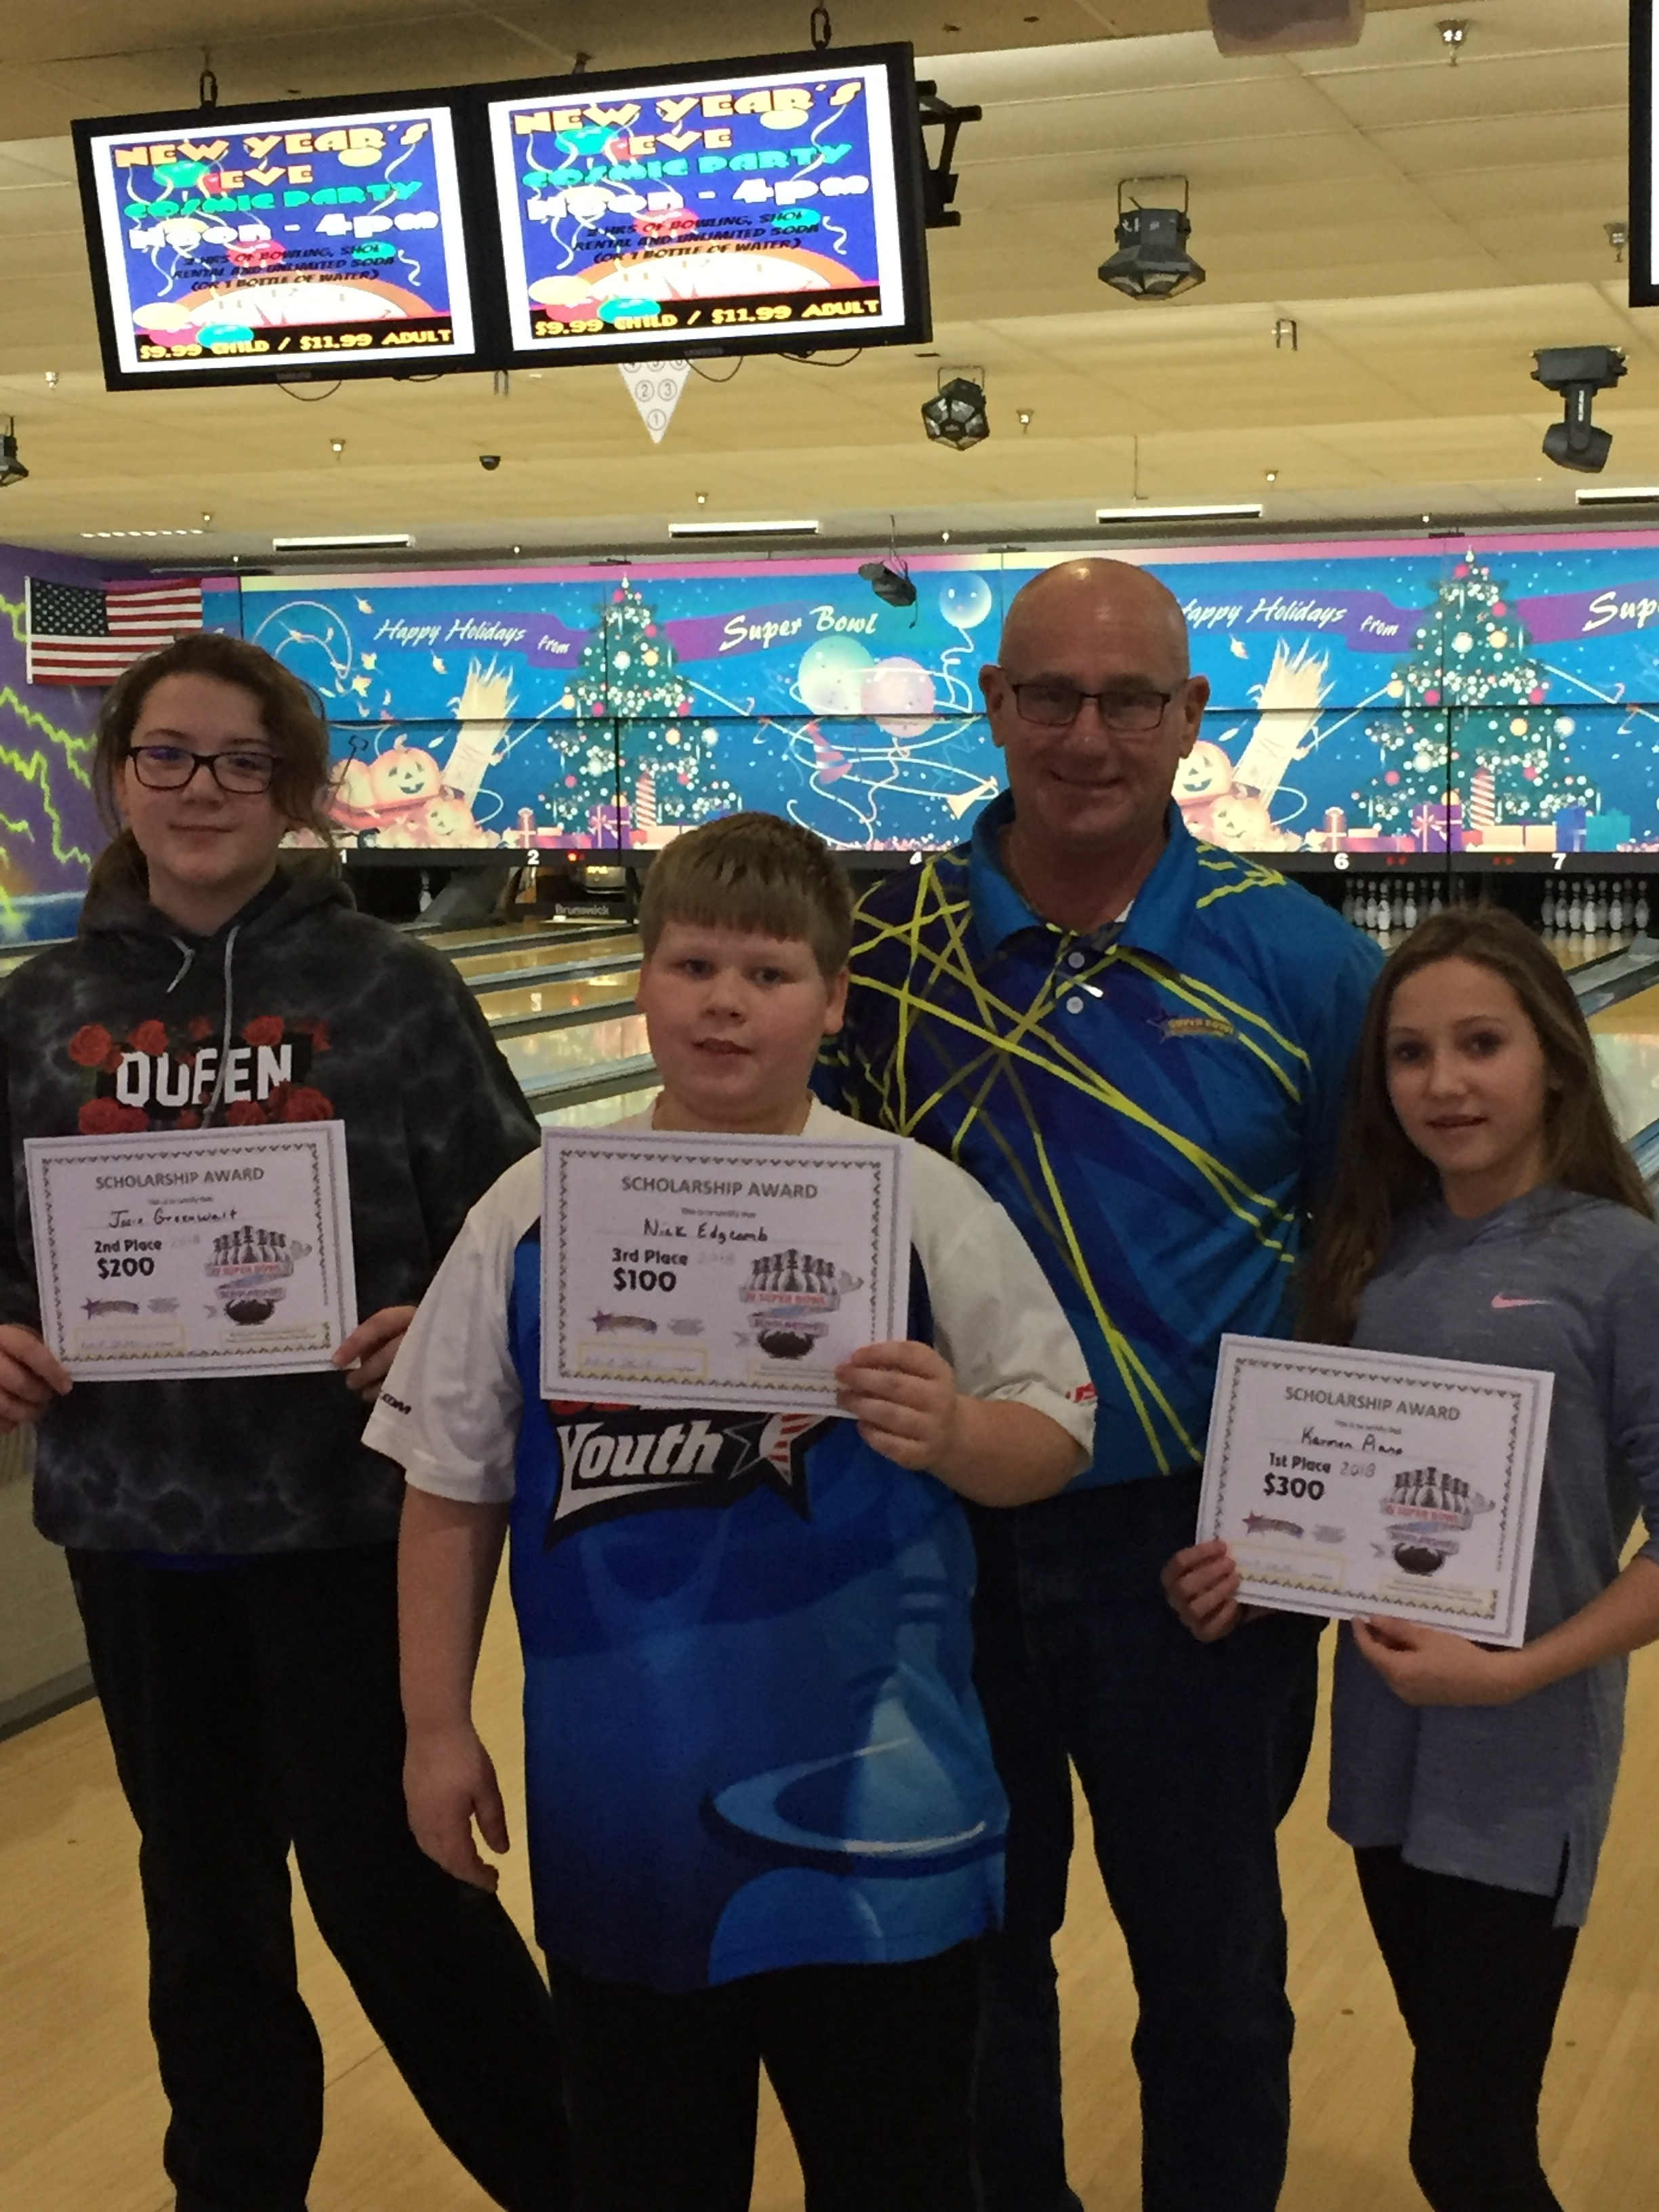 Age 11 and under L - R: Josie greenwalt, nick edgcomb, bob stubler and Karen piano